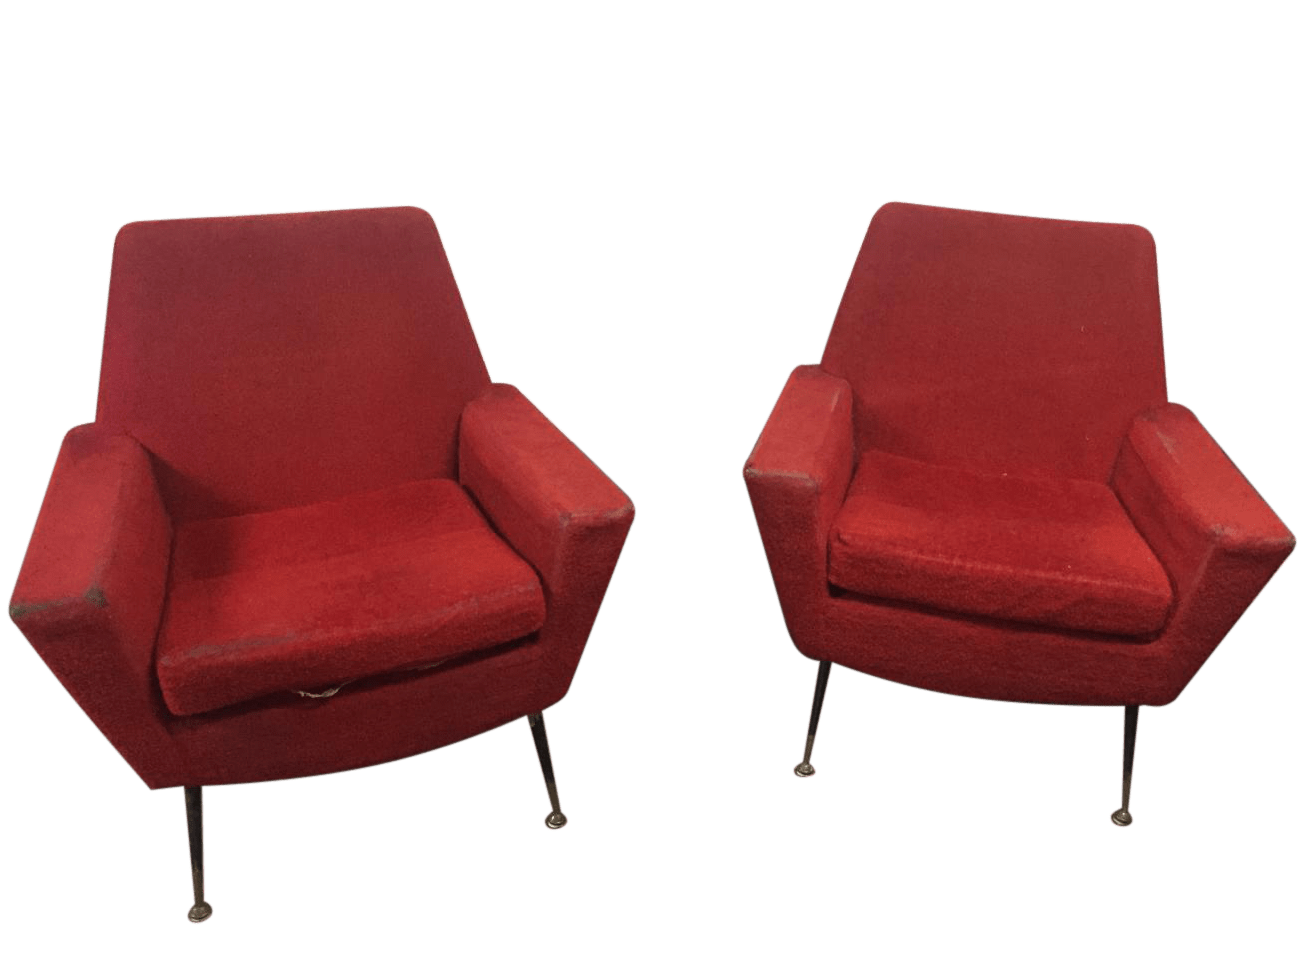 Toletta vintage design danese originale anni 60 tolstk001. Pair Of Vintage Geometric Armchairs By Fabio Lenci From The 1960s